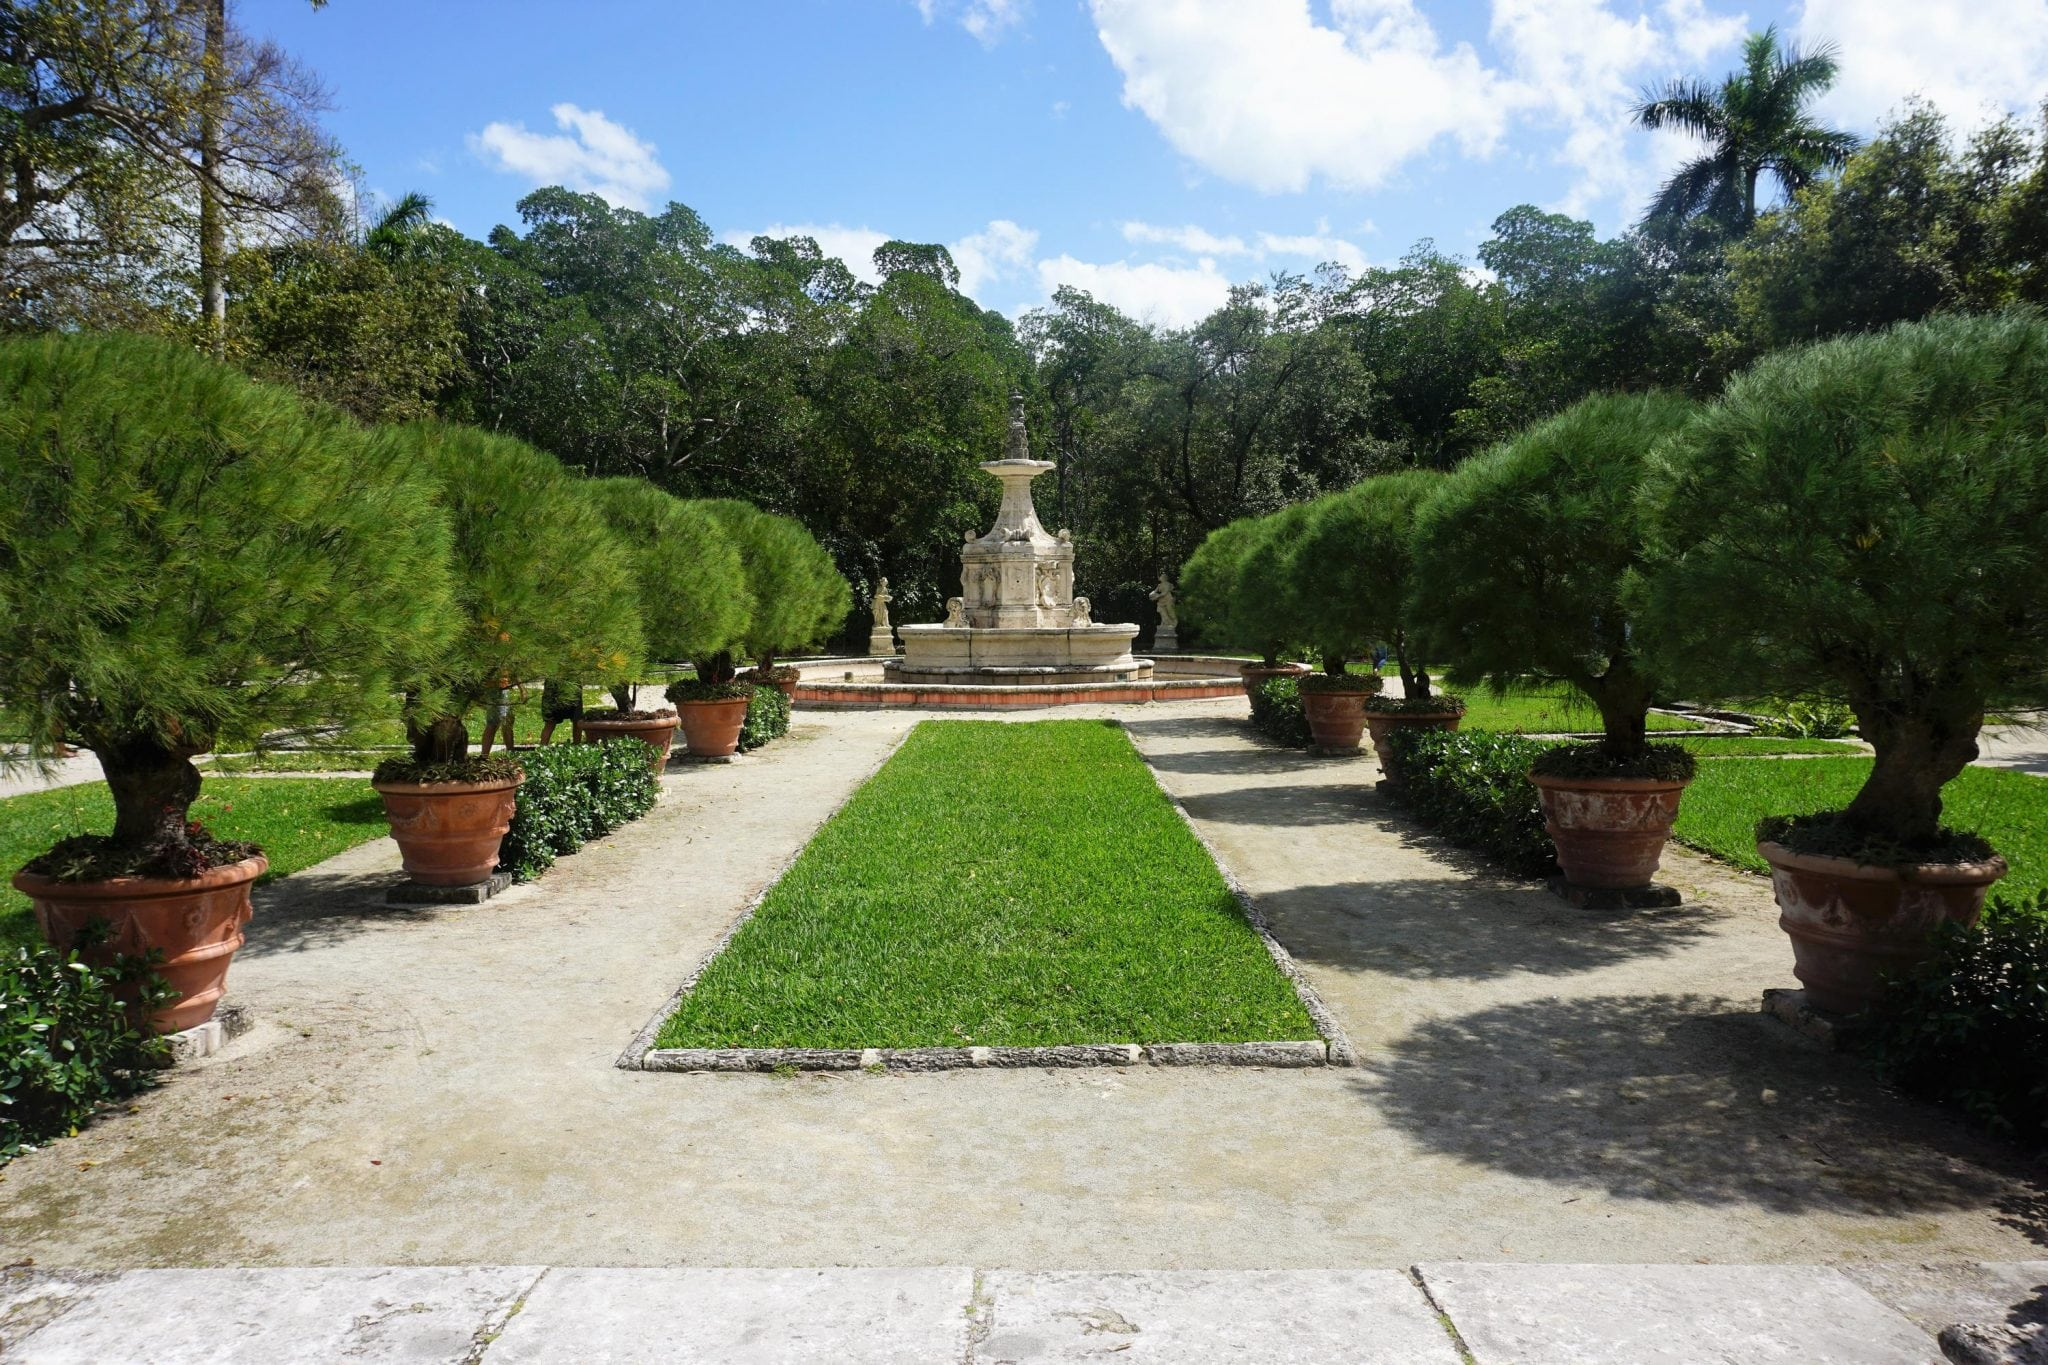 Secret Garden at Vizcaya